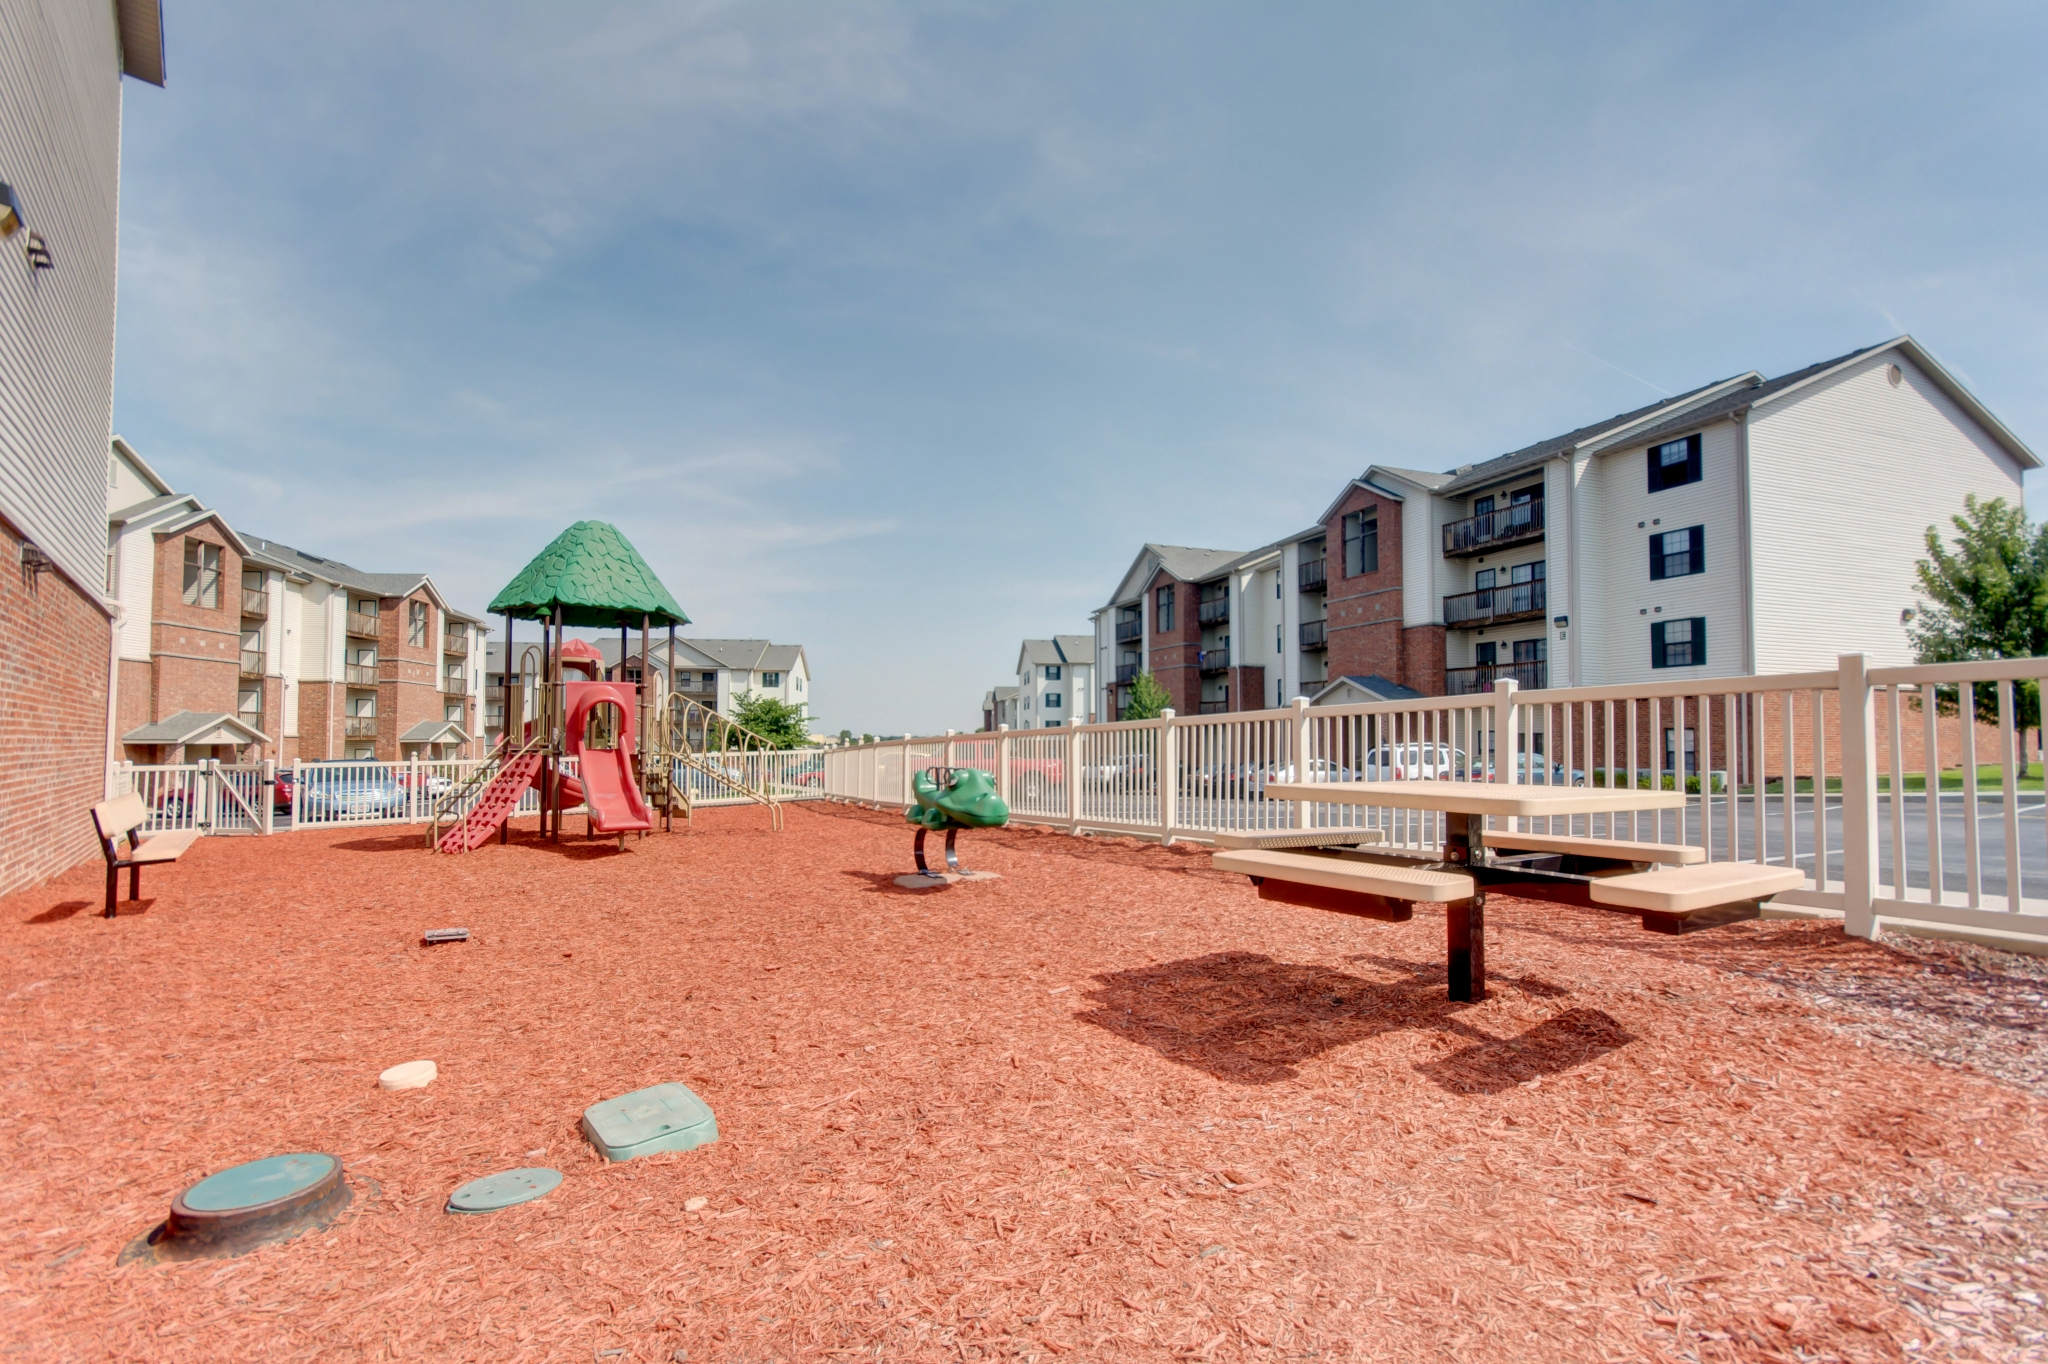 Orchard Park Apartments amenity playground